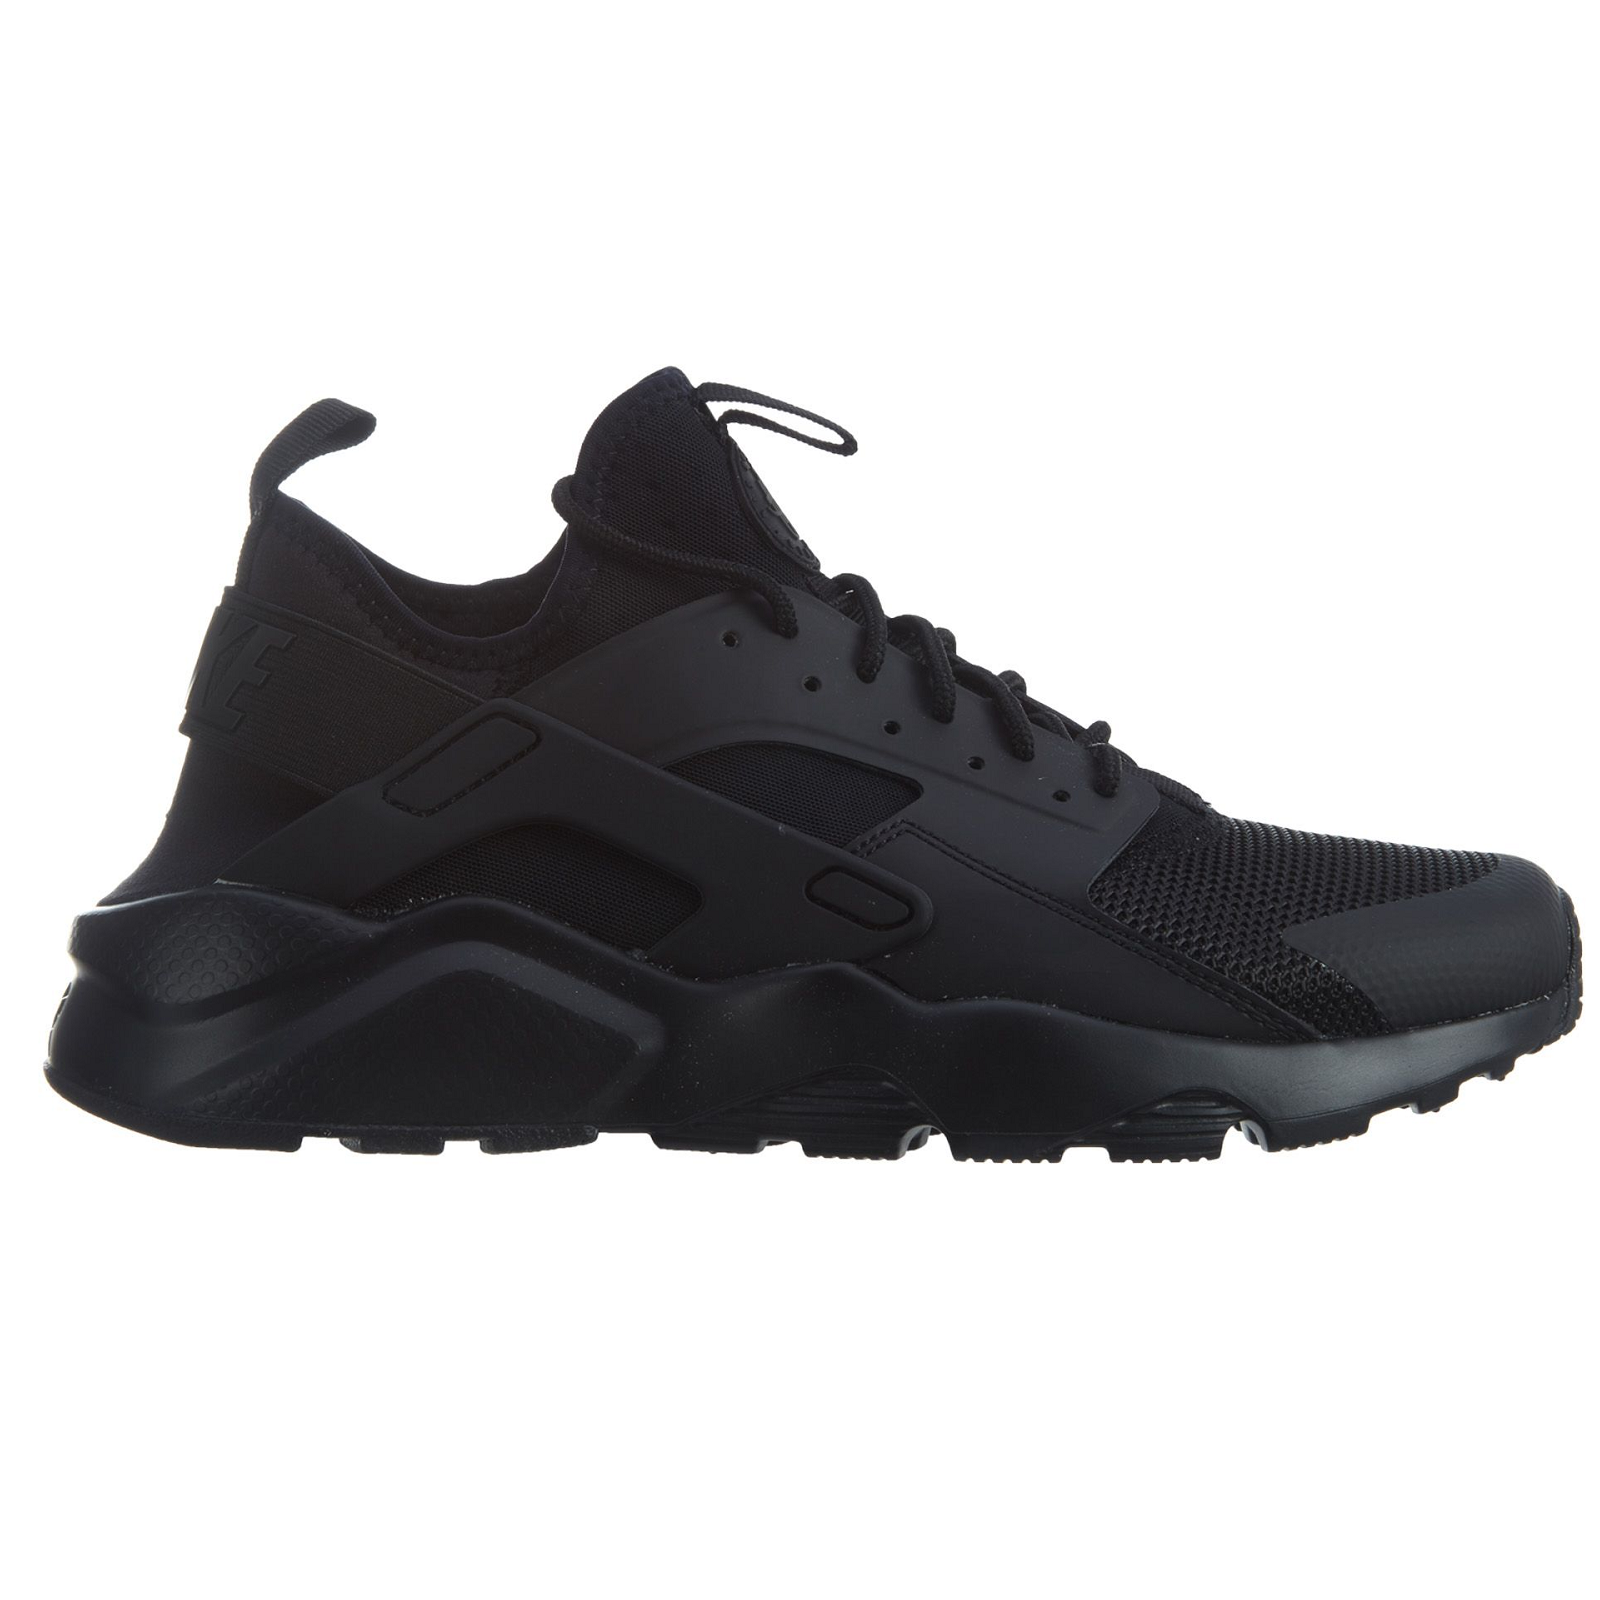 new arrival e375c d62fc Nike Air Huarache Run Ultra All Black Sneaker Sport Shoes 819685-002